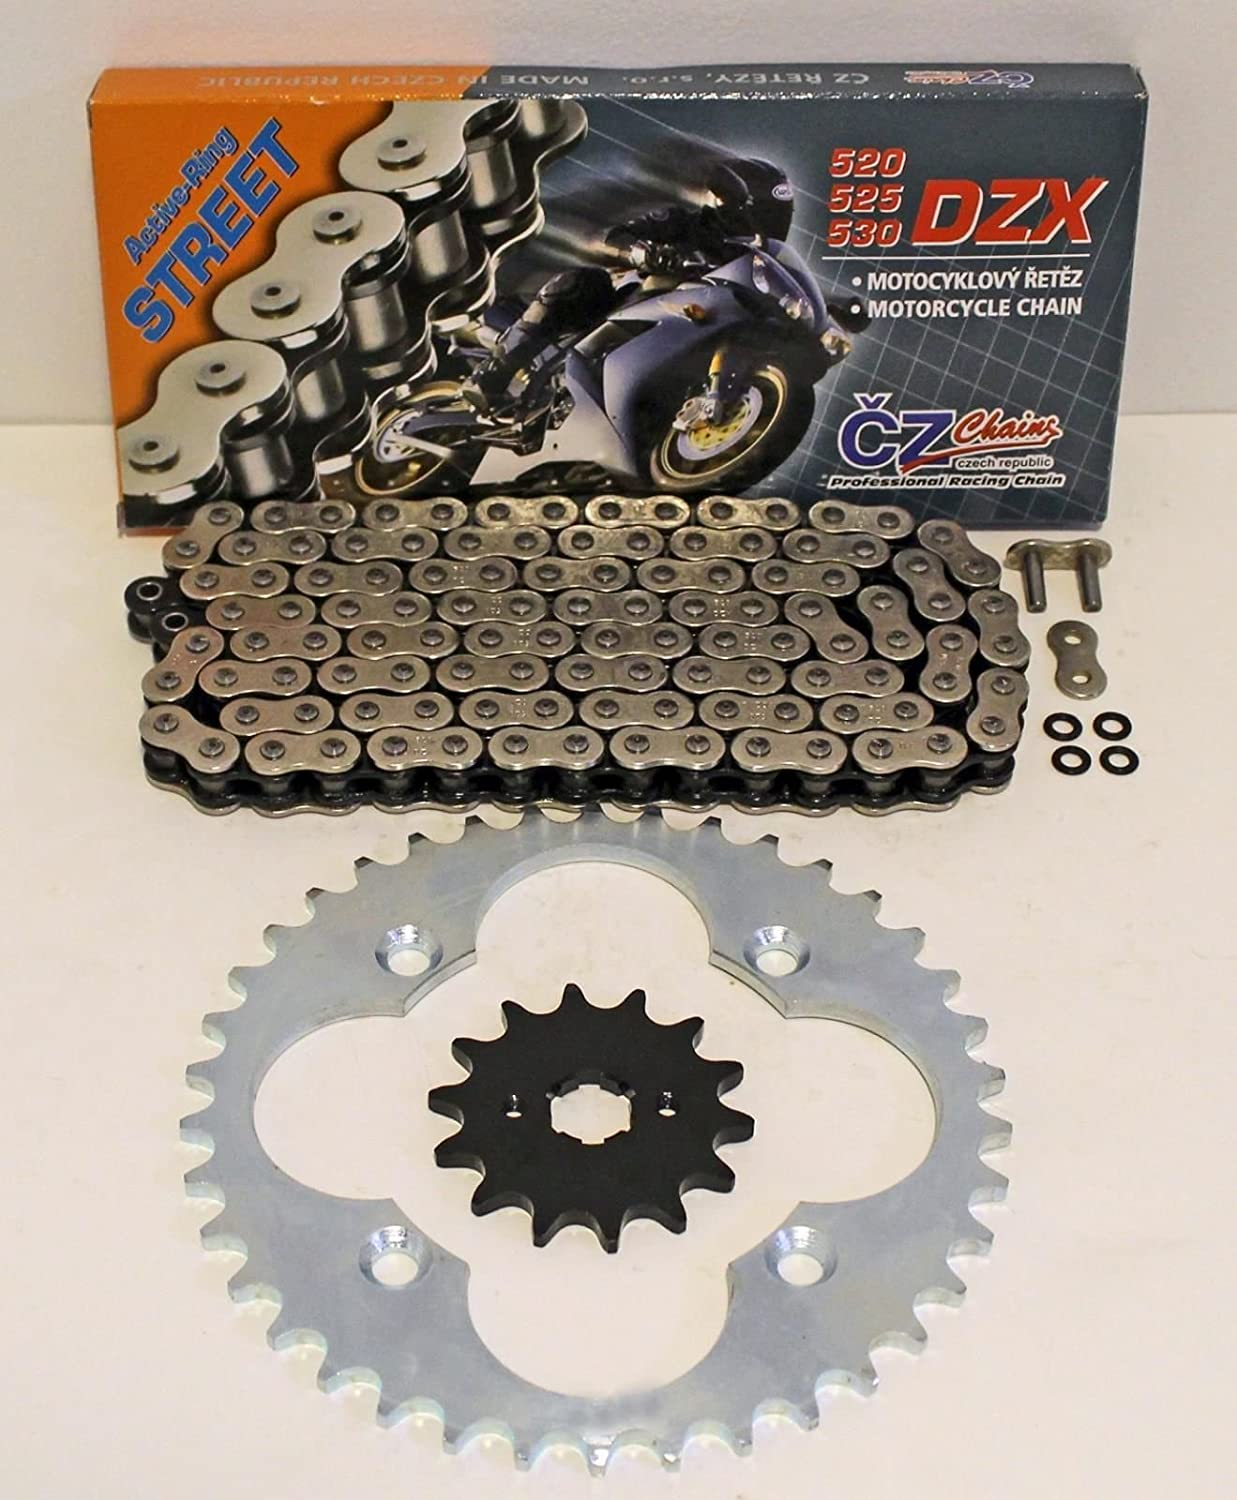 1987 1988 1989 HONDA TRX250X TRX 250X CZ DZX X RING CHAIN AND SPROCKET 14/36 sp lamp 088 high quality projector replacement lamp bulb with housing for i nfocus in3138hd vip280 happybate